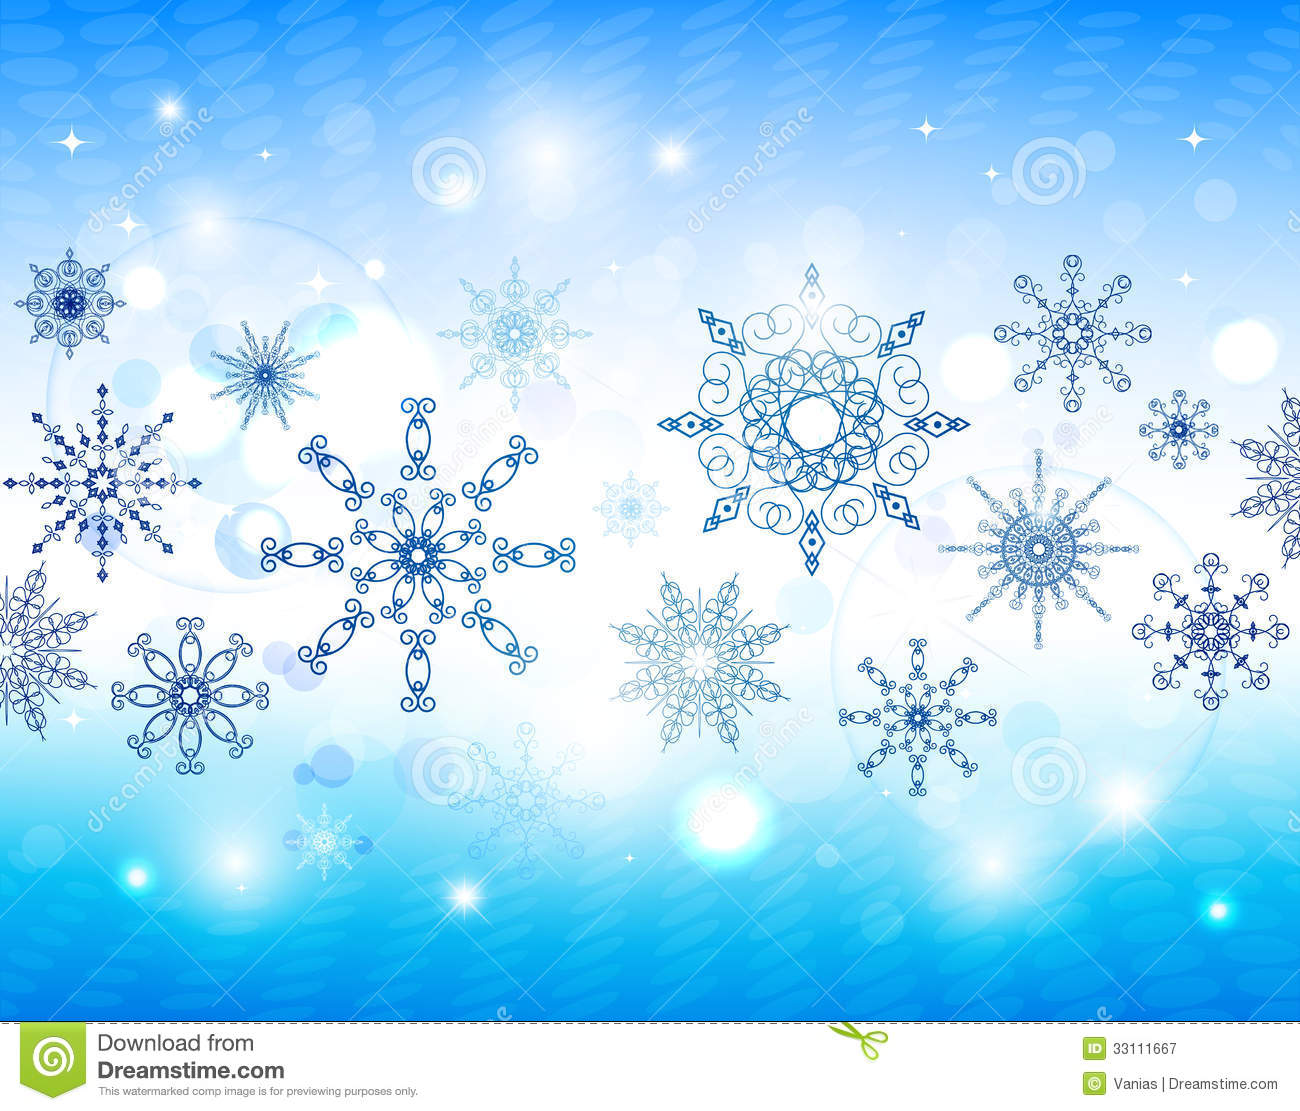 abstract winter background free - photo #40